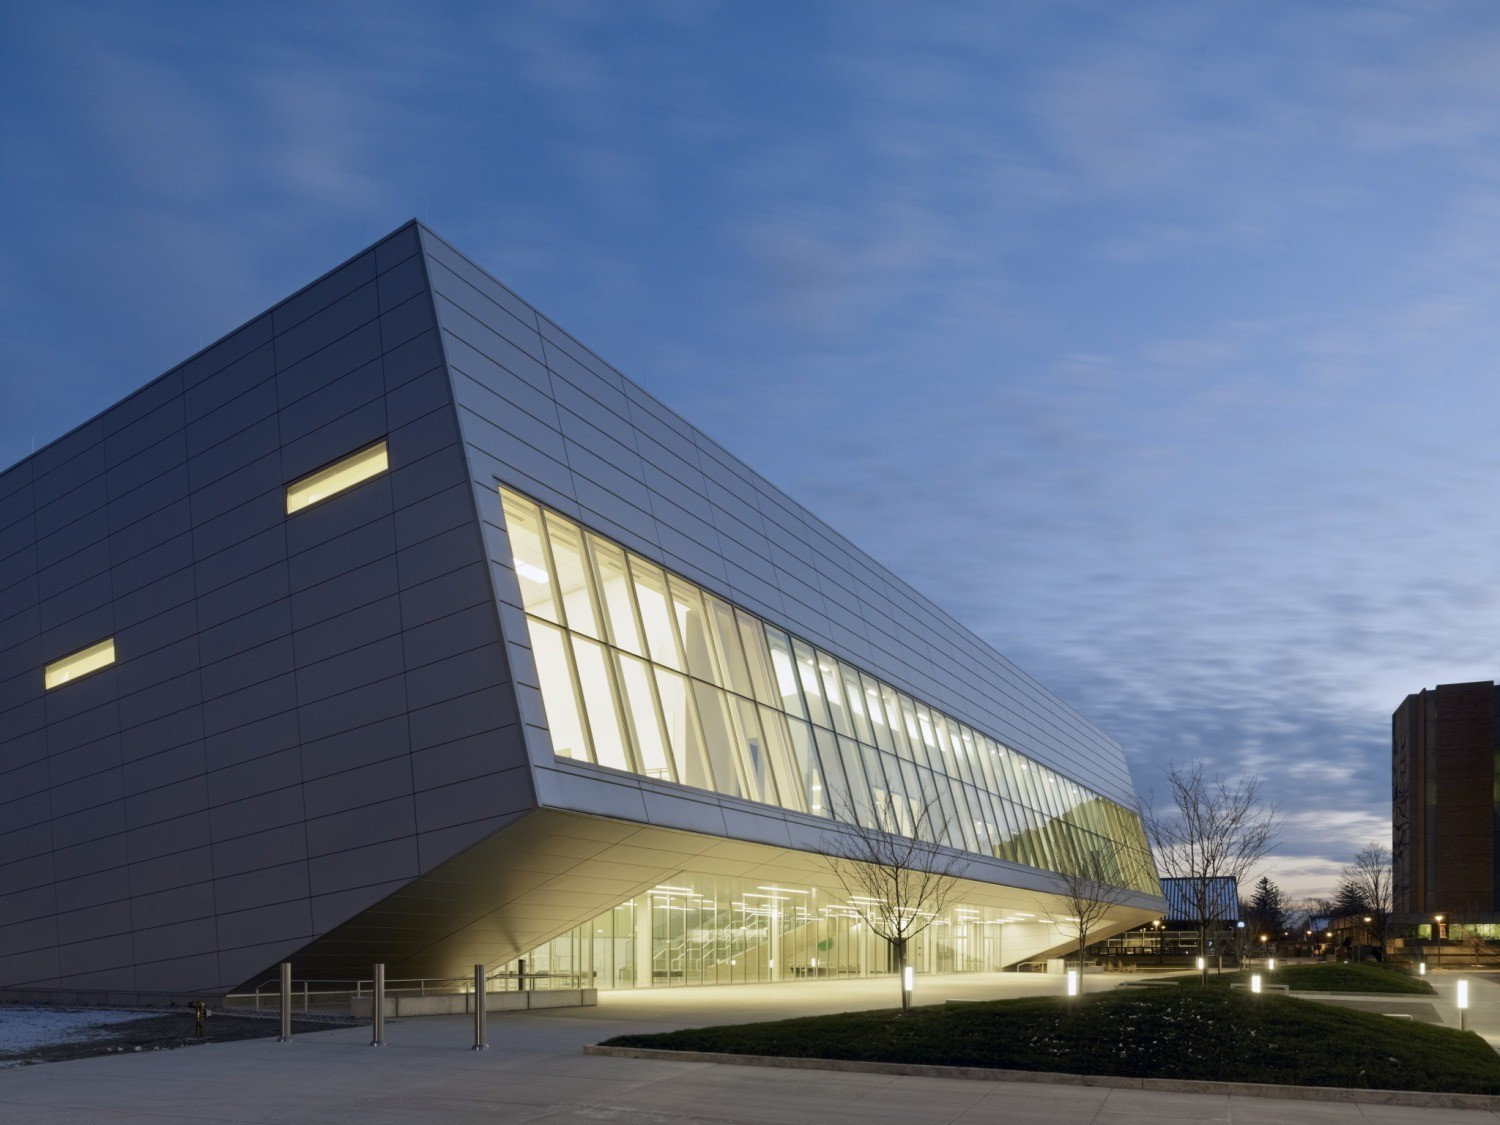 25 Works of Snøhetta Every Architect should visit - Wolfe Center for the Collaborative Arts